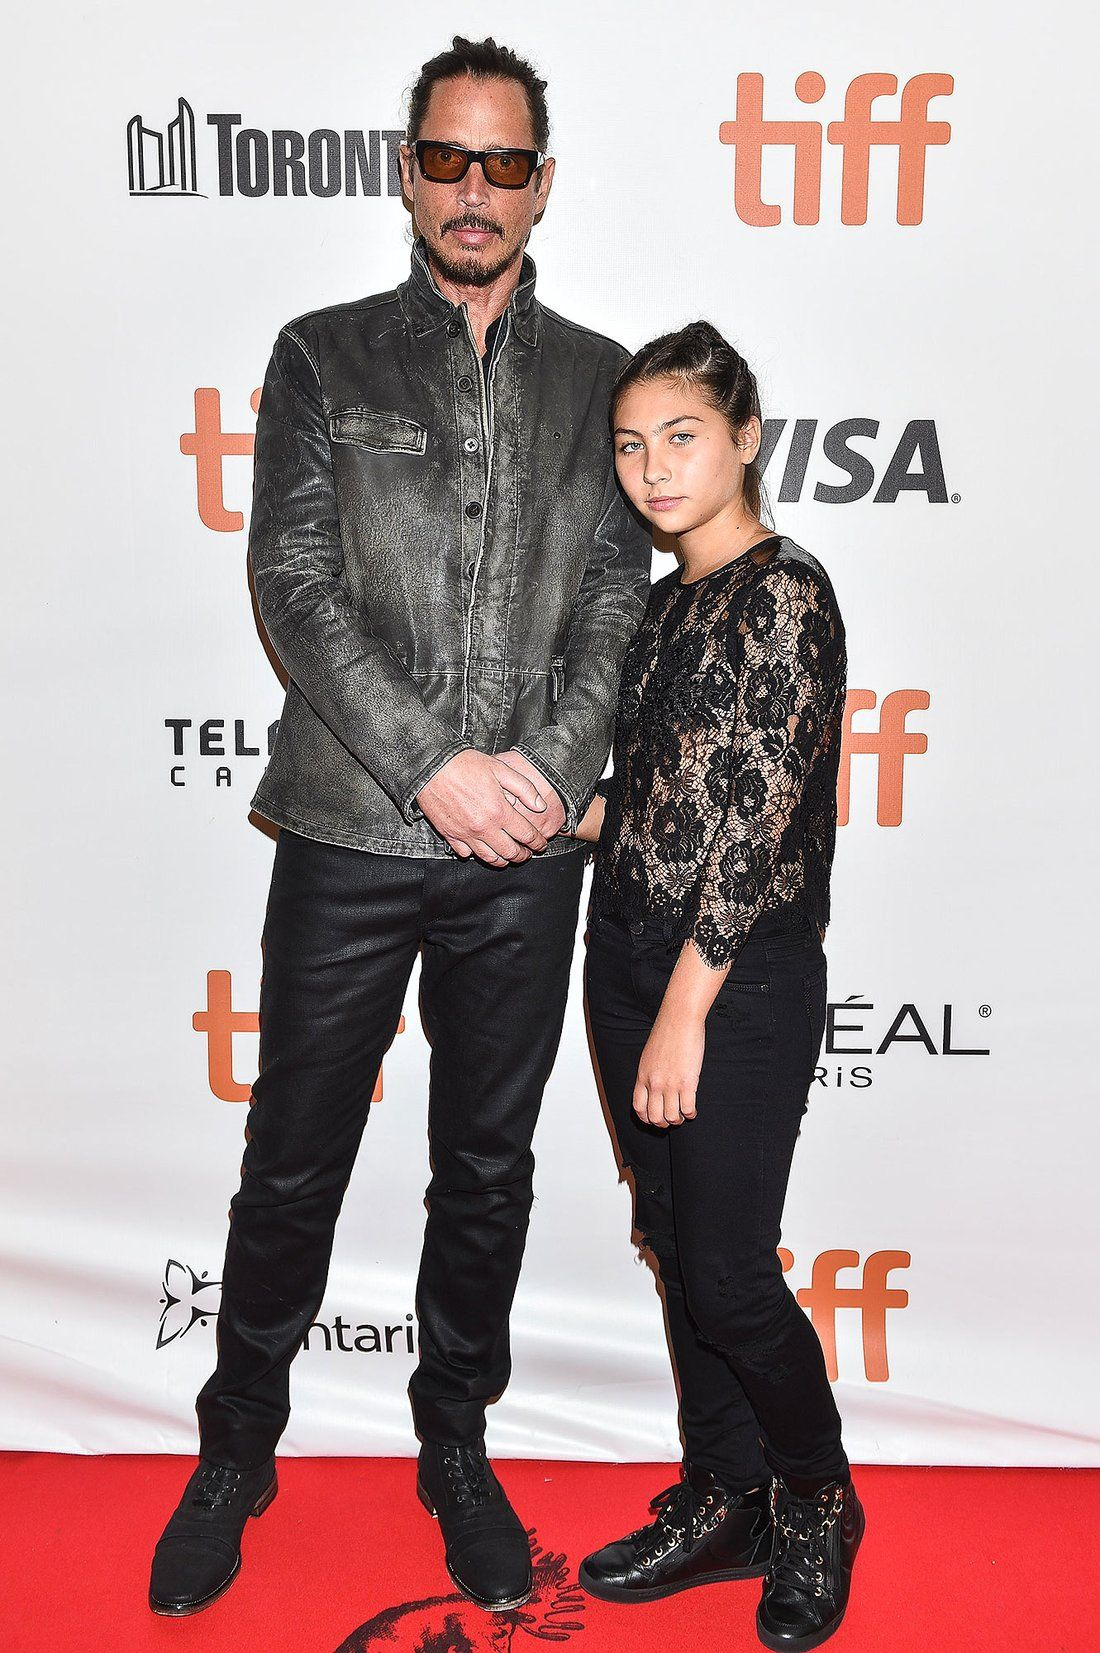 Chris Cornell posing with his daughter Toni on a red carpet